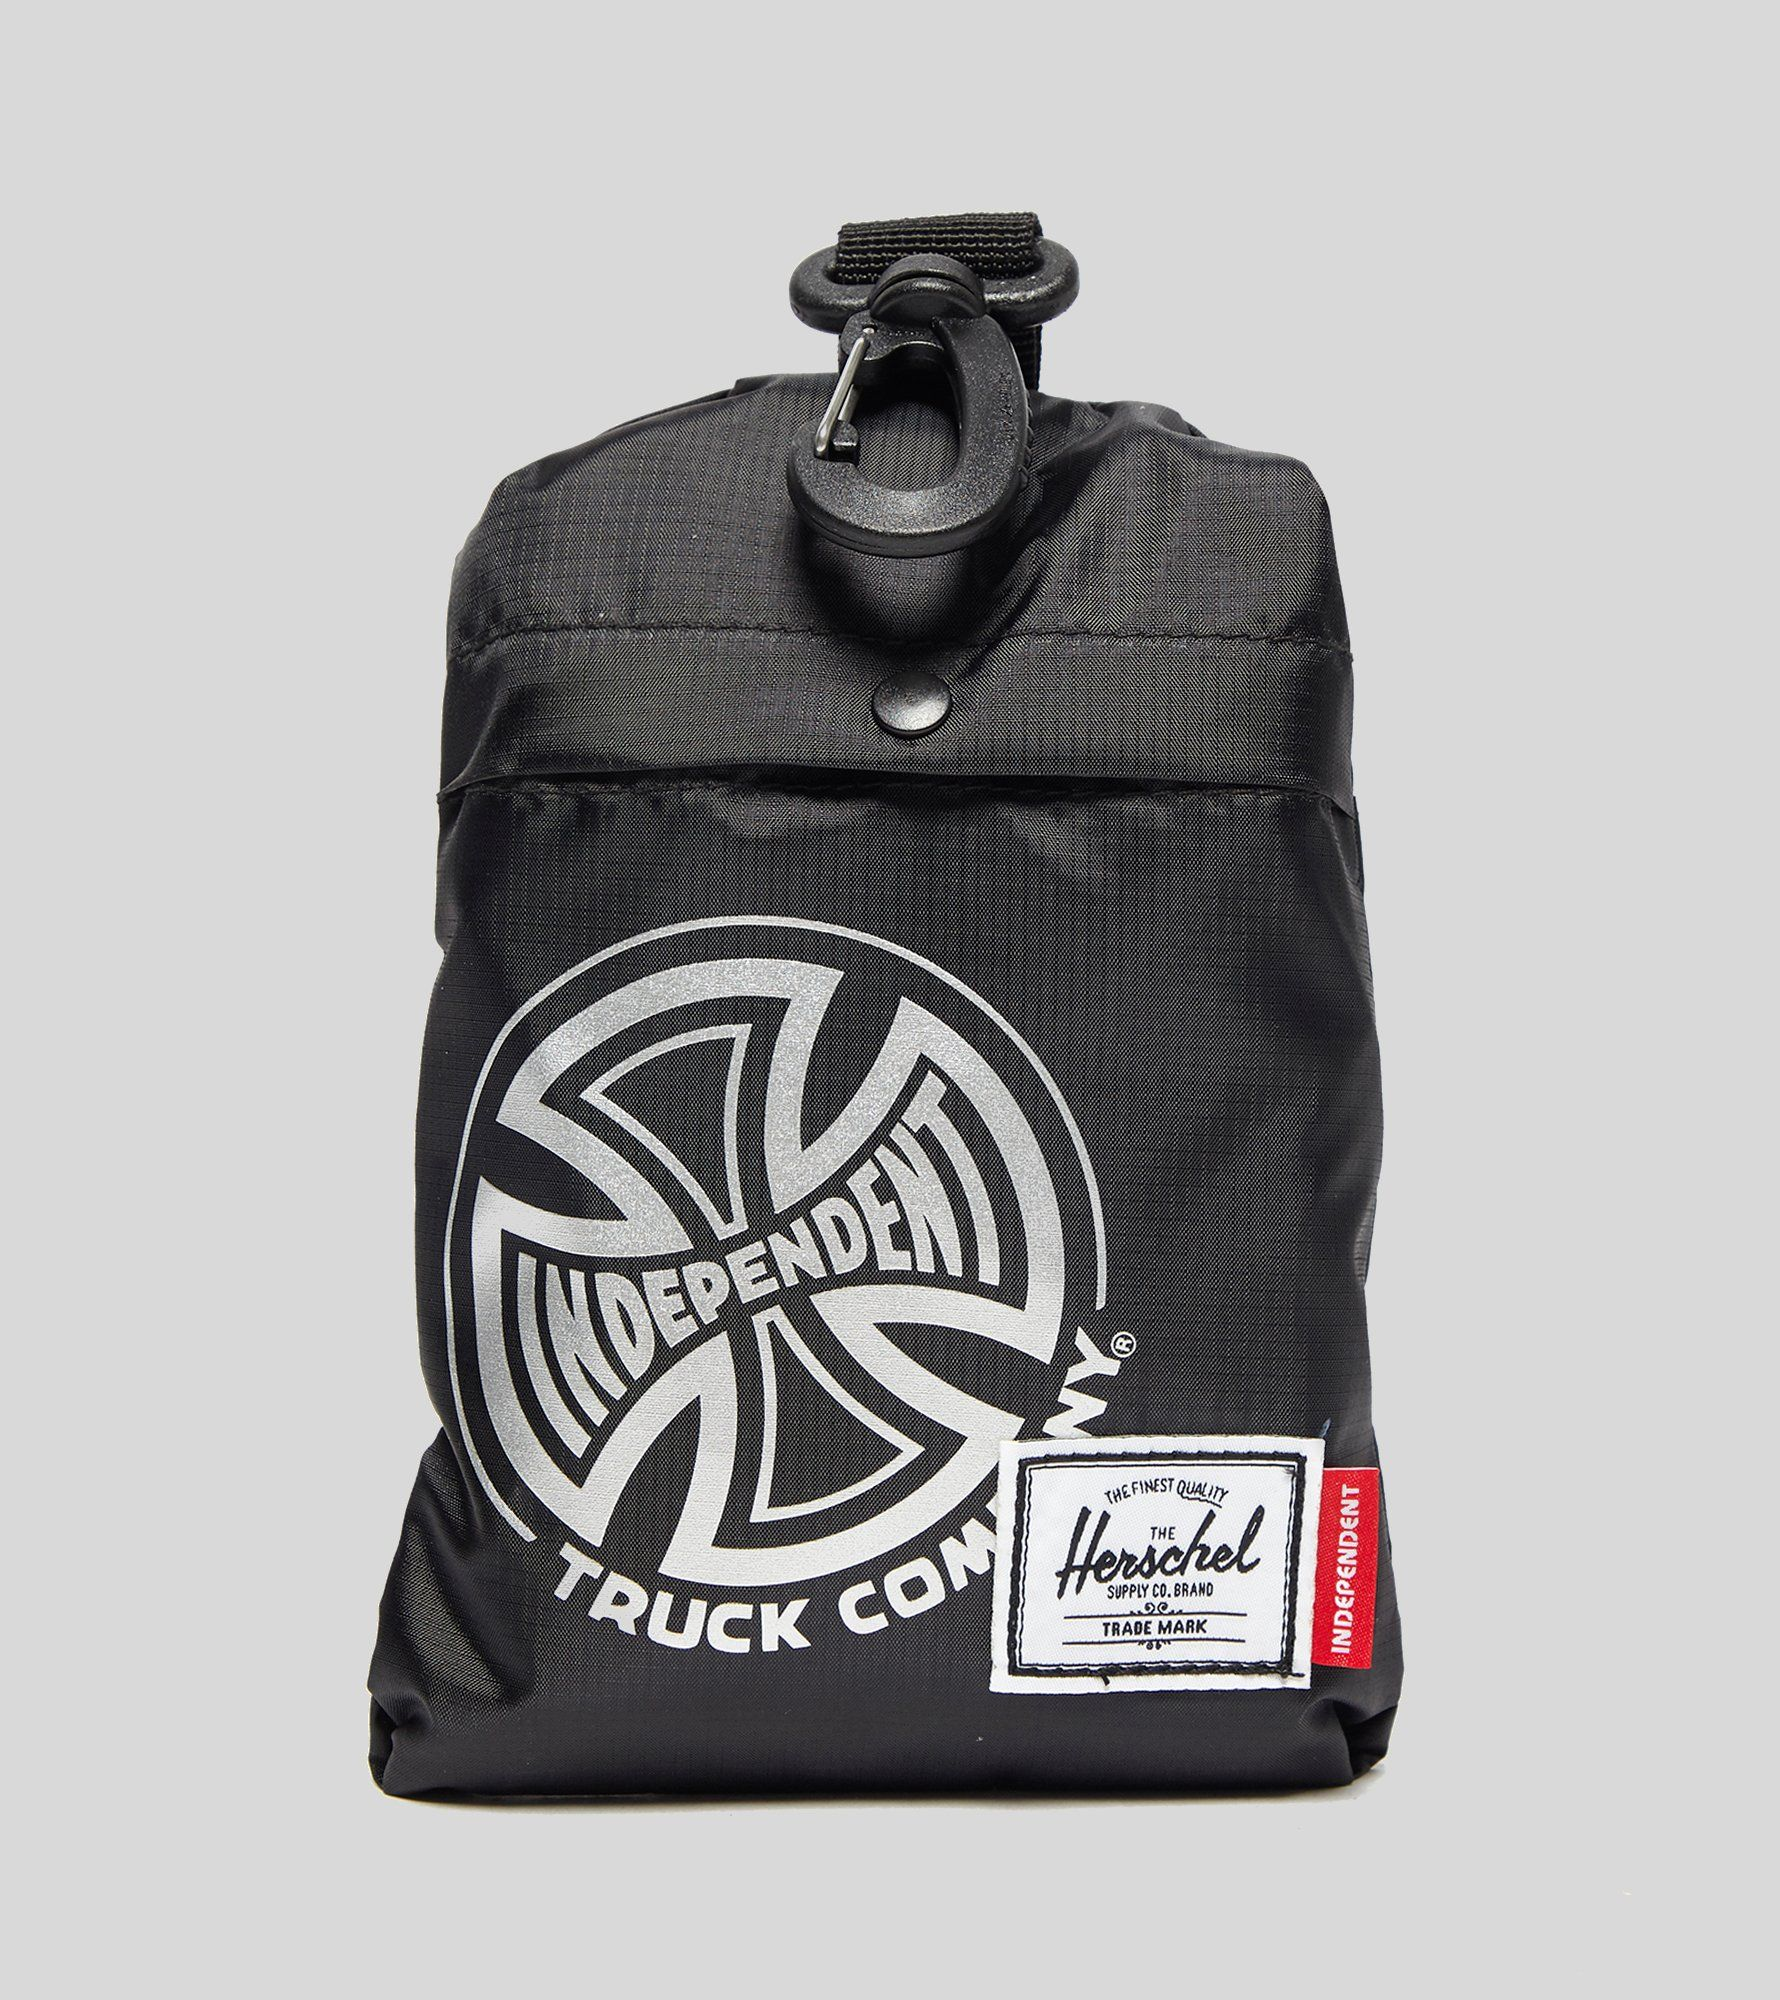 Herschel Supply Co x Independent Truck Company Packable Tote Bag